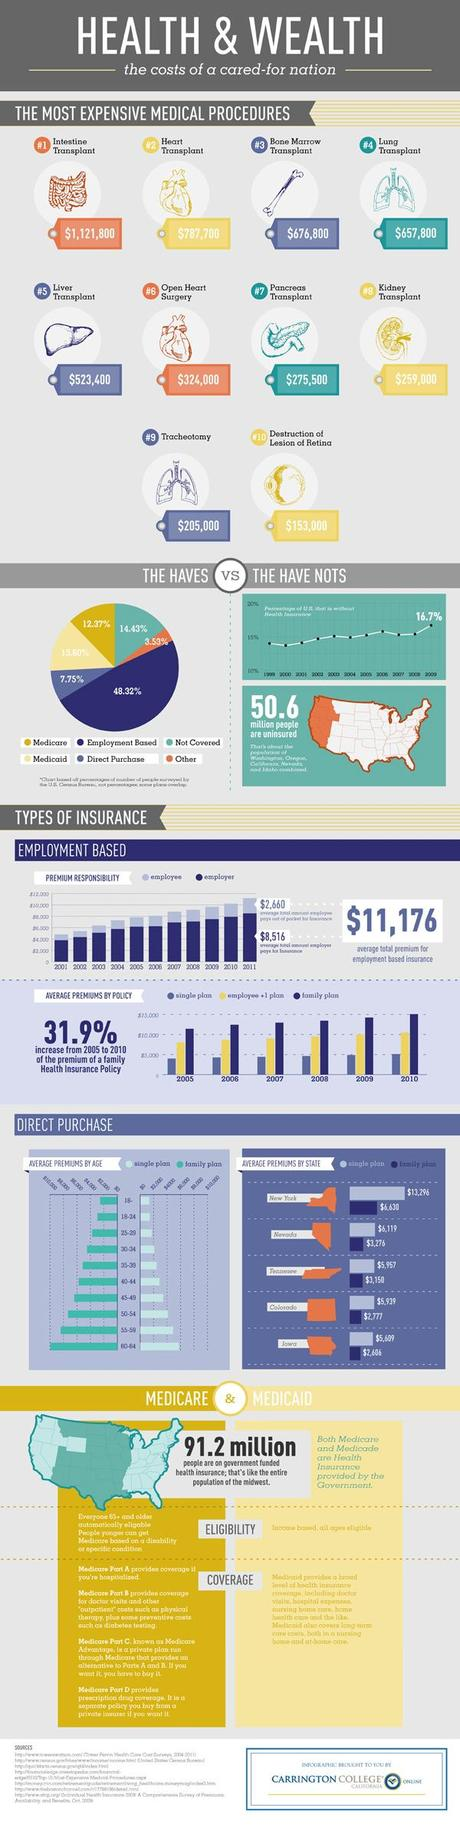 Health Care Information Technology - Infographic